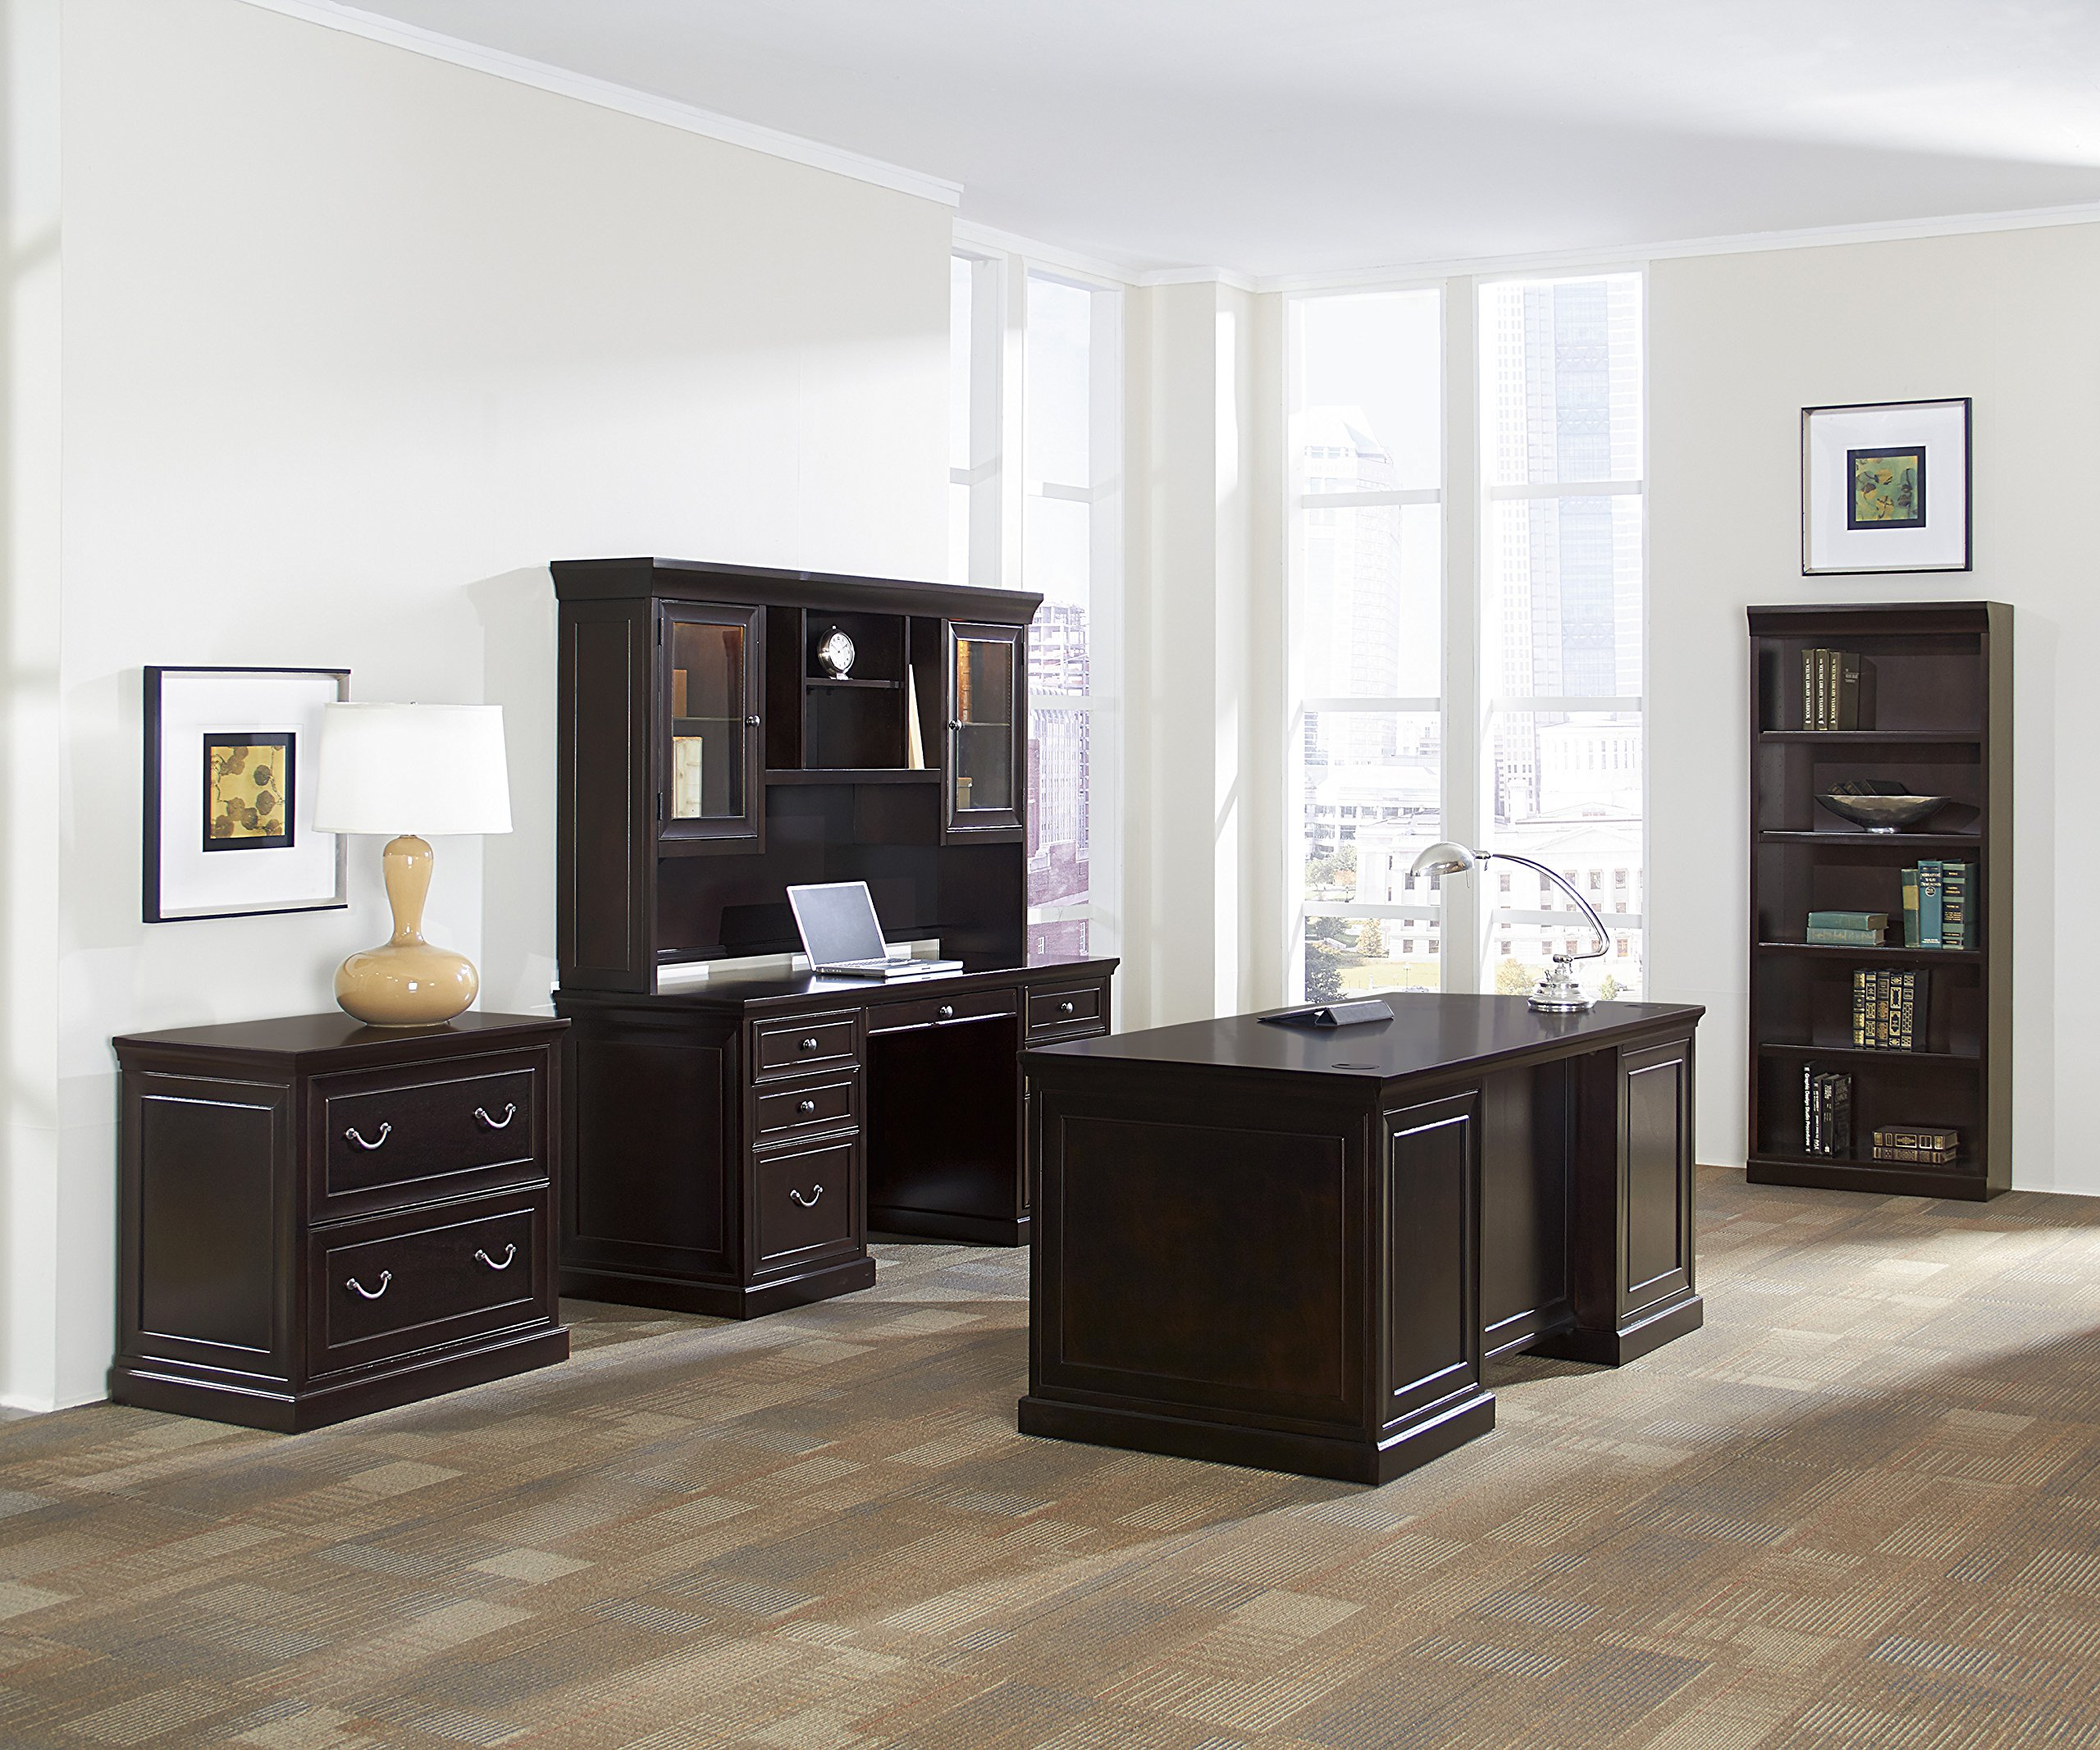 Martin Furniture Fulton Lateral File Cabinet - Fully Assembled by Martin Furniture